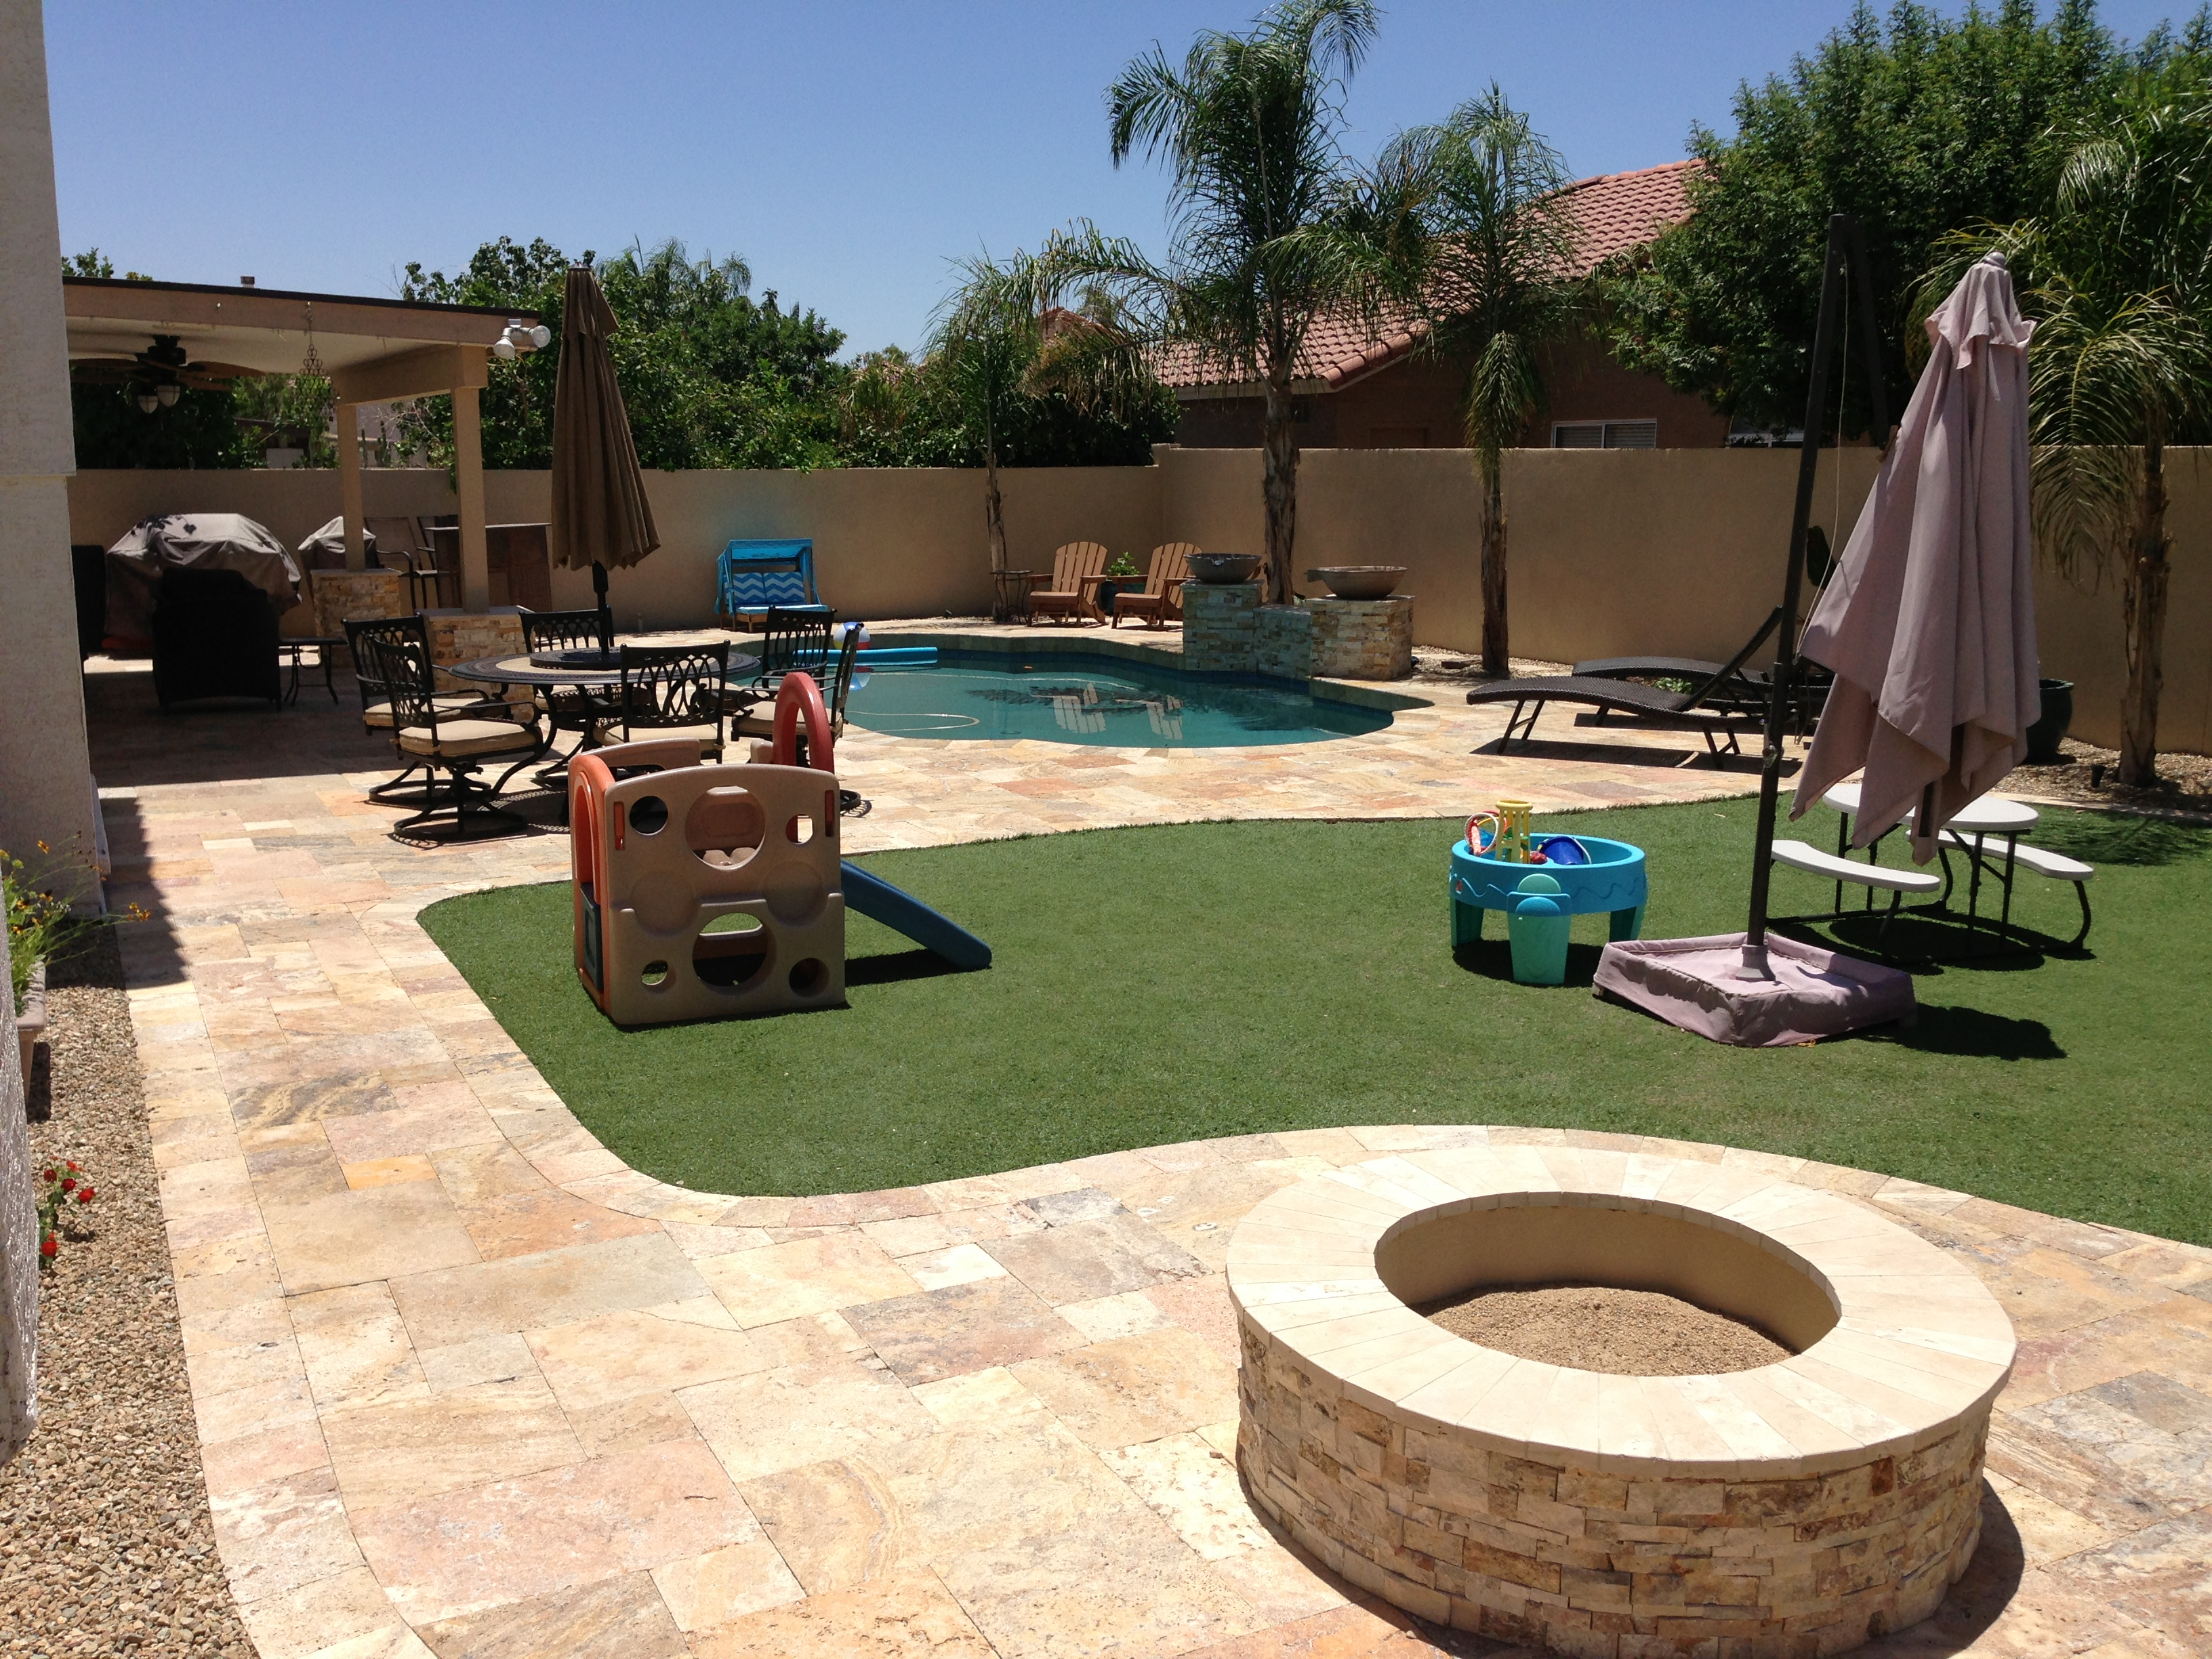 Charmant Phoenix Landscape Renovation Creates Family Fun!